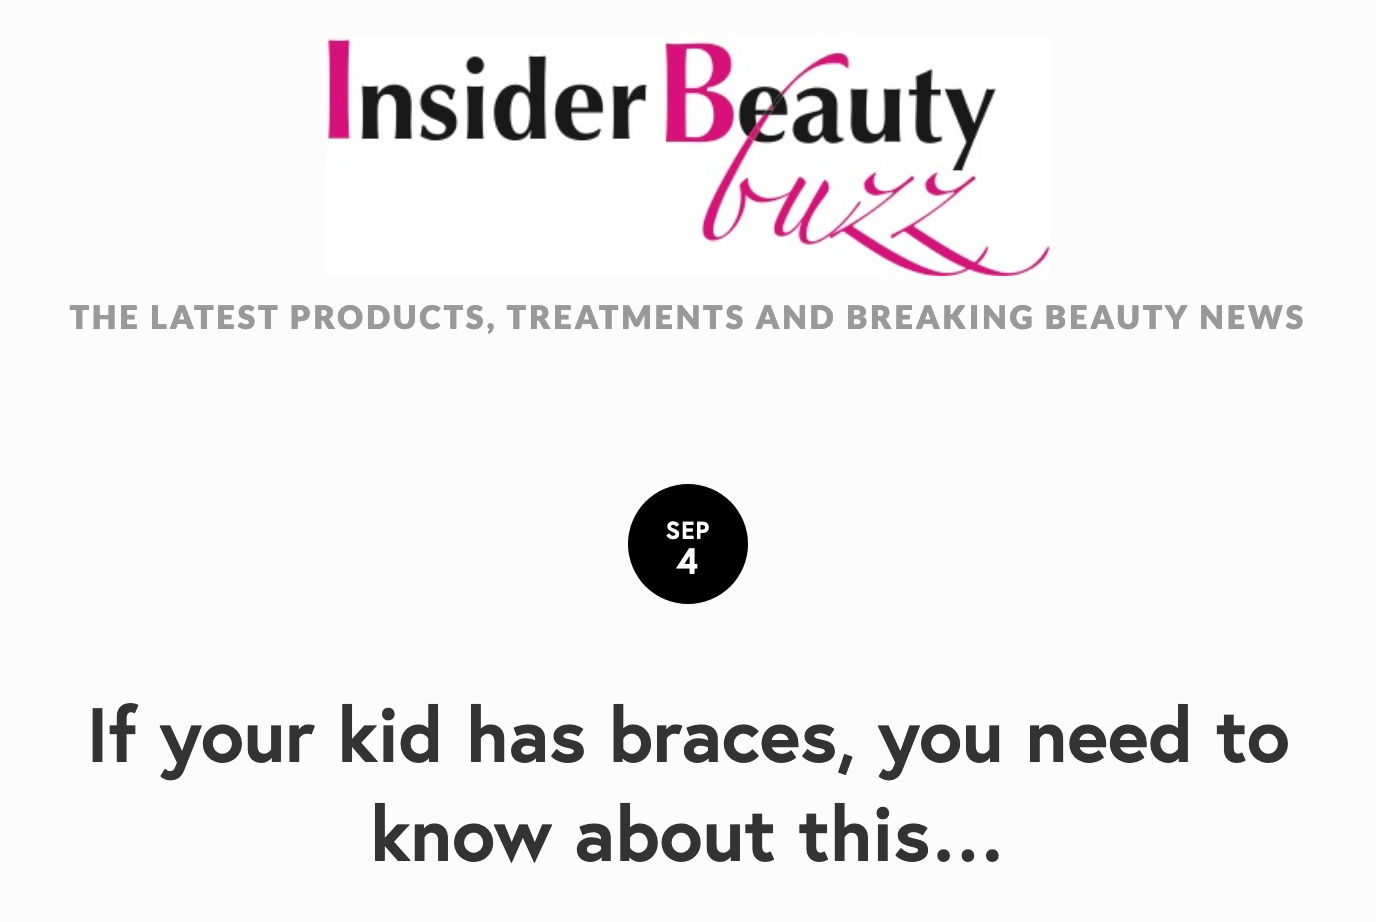 Screenshot of text reads: Insider Beauty Buzz: The latest products, treatments, and breaking beauty news. If your kid has braces, you need to know about this...